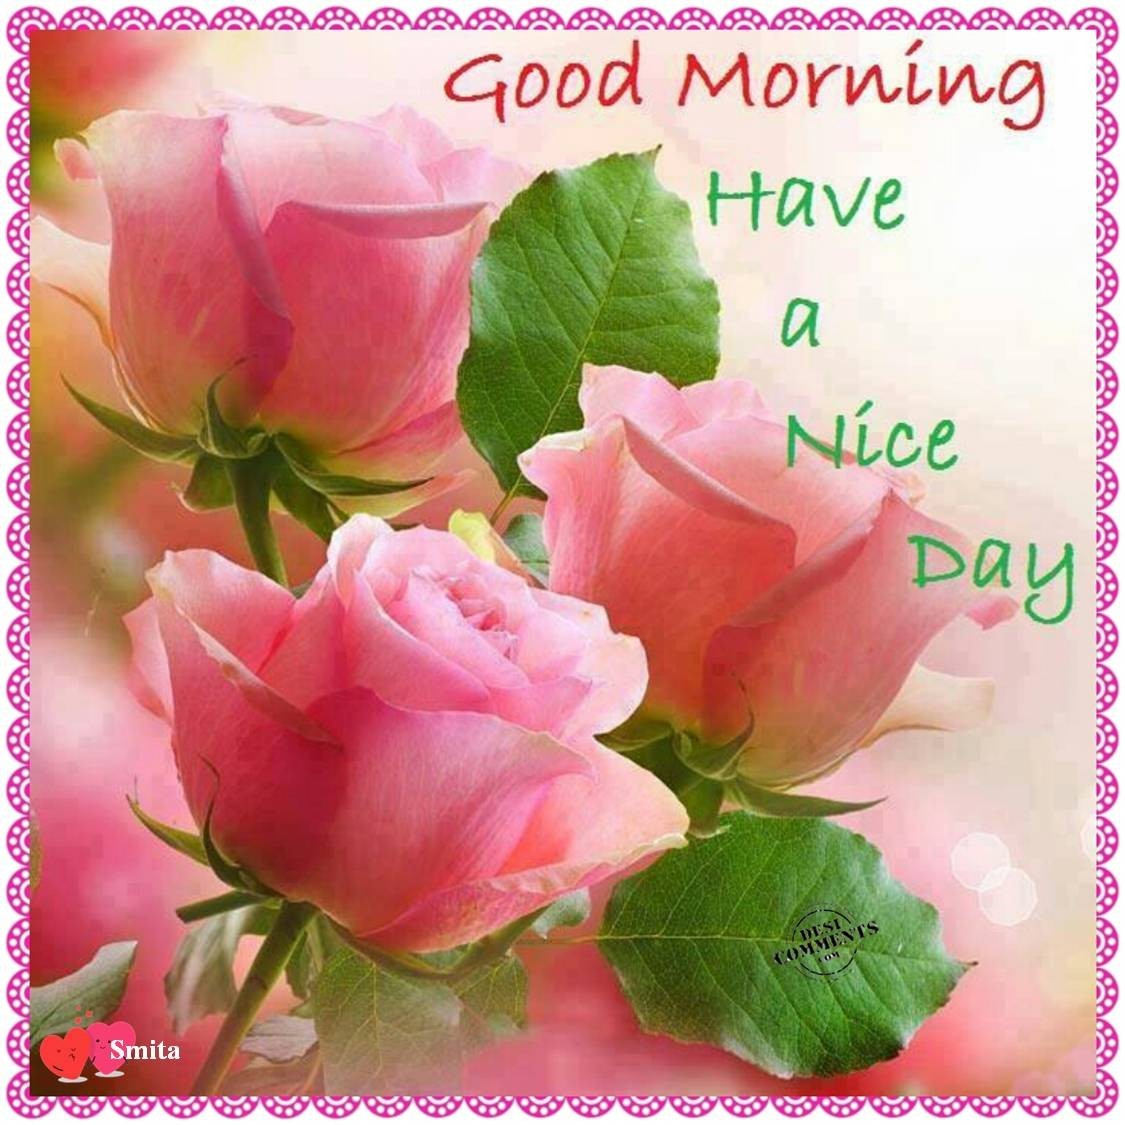 Good Morning Friends Have A Nice Day Images : Good morning my dear friends have a nice day